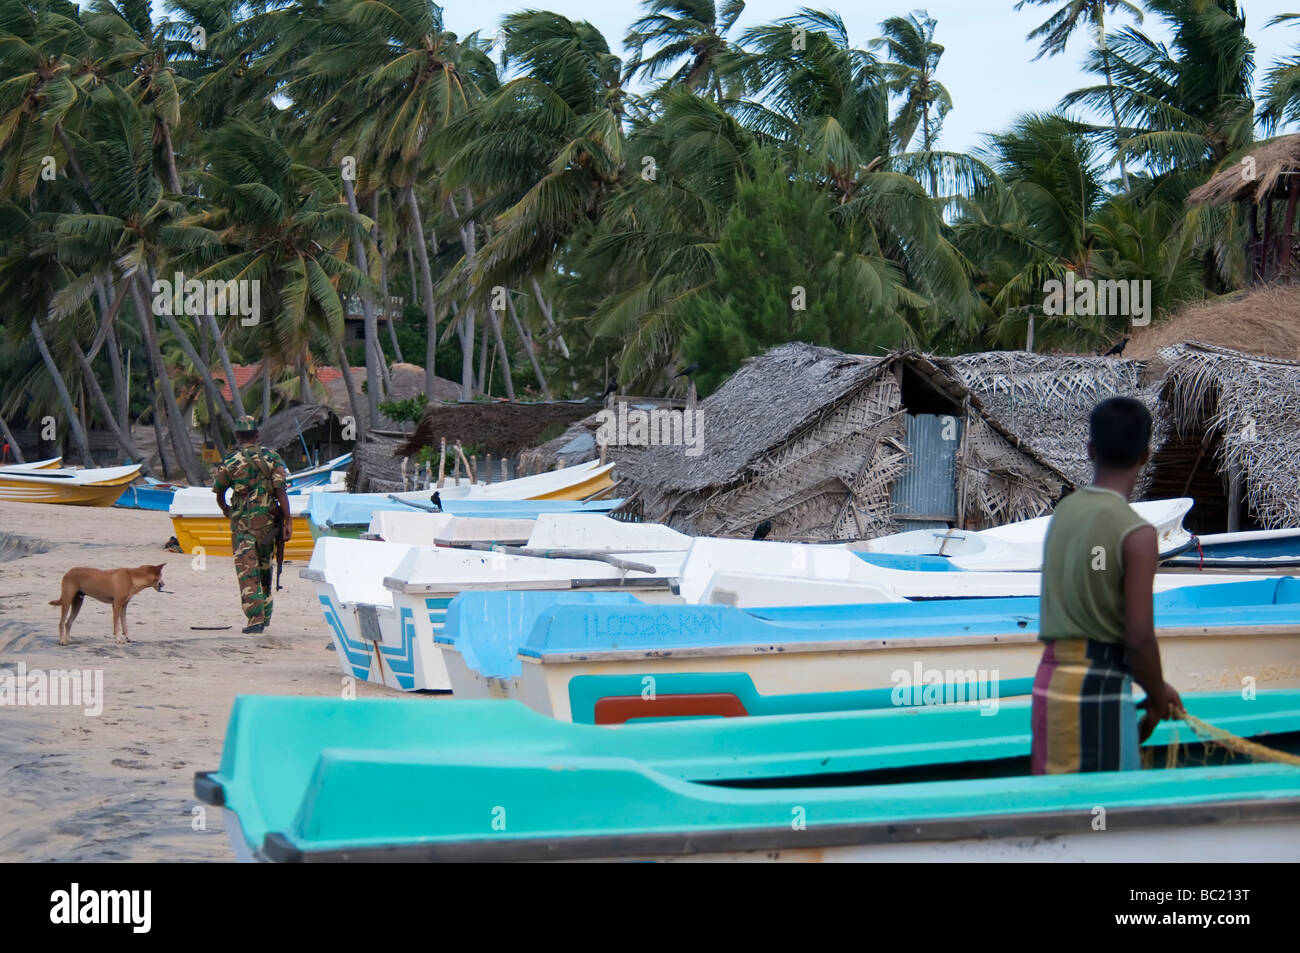 Arugam Bay Sri Lanka fisherman working on the beach armed soldier walking beside boats palm trees fishermen huts Stock Photo